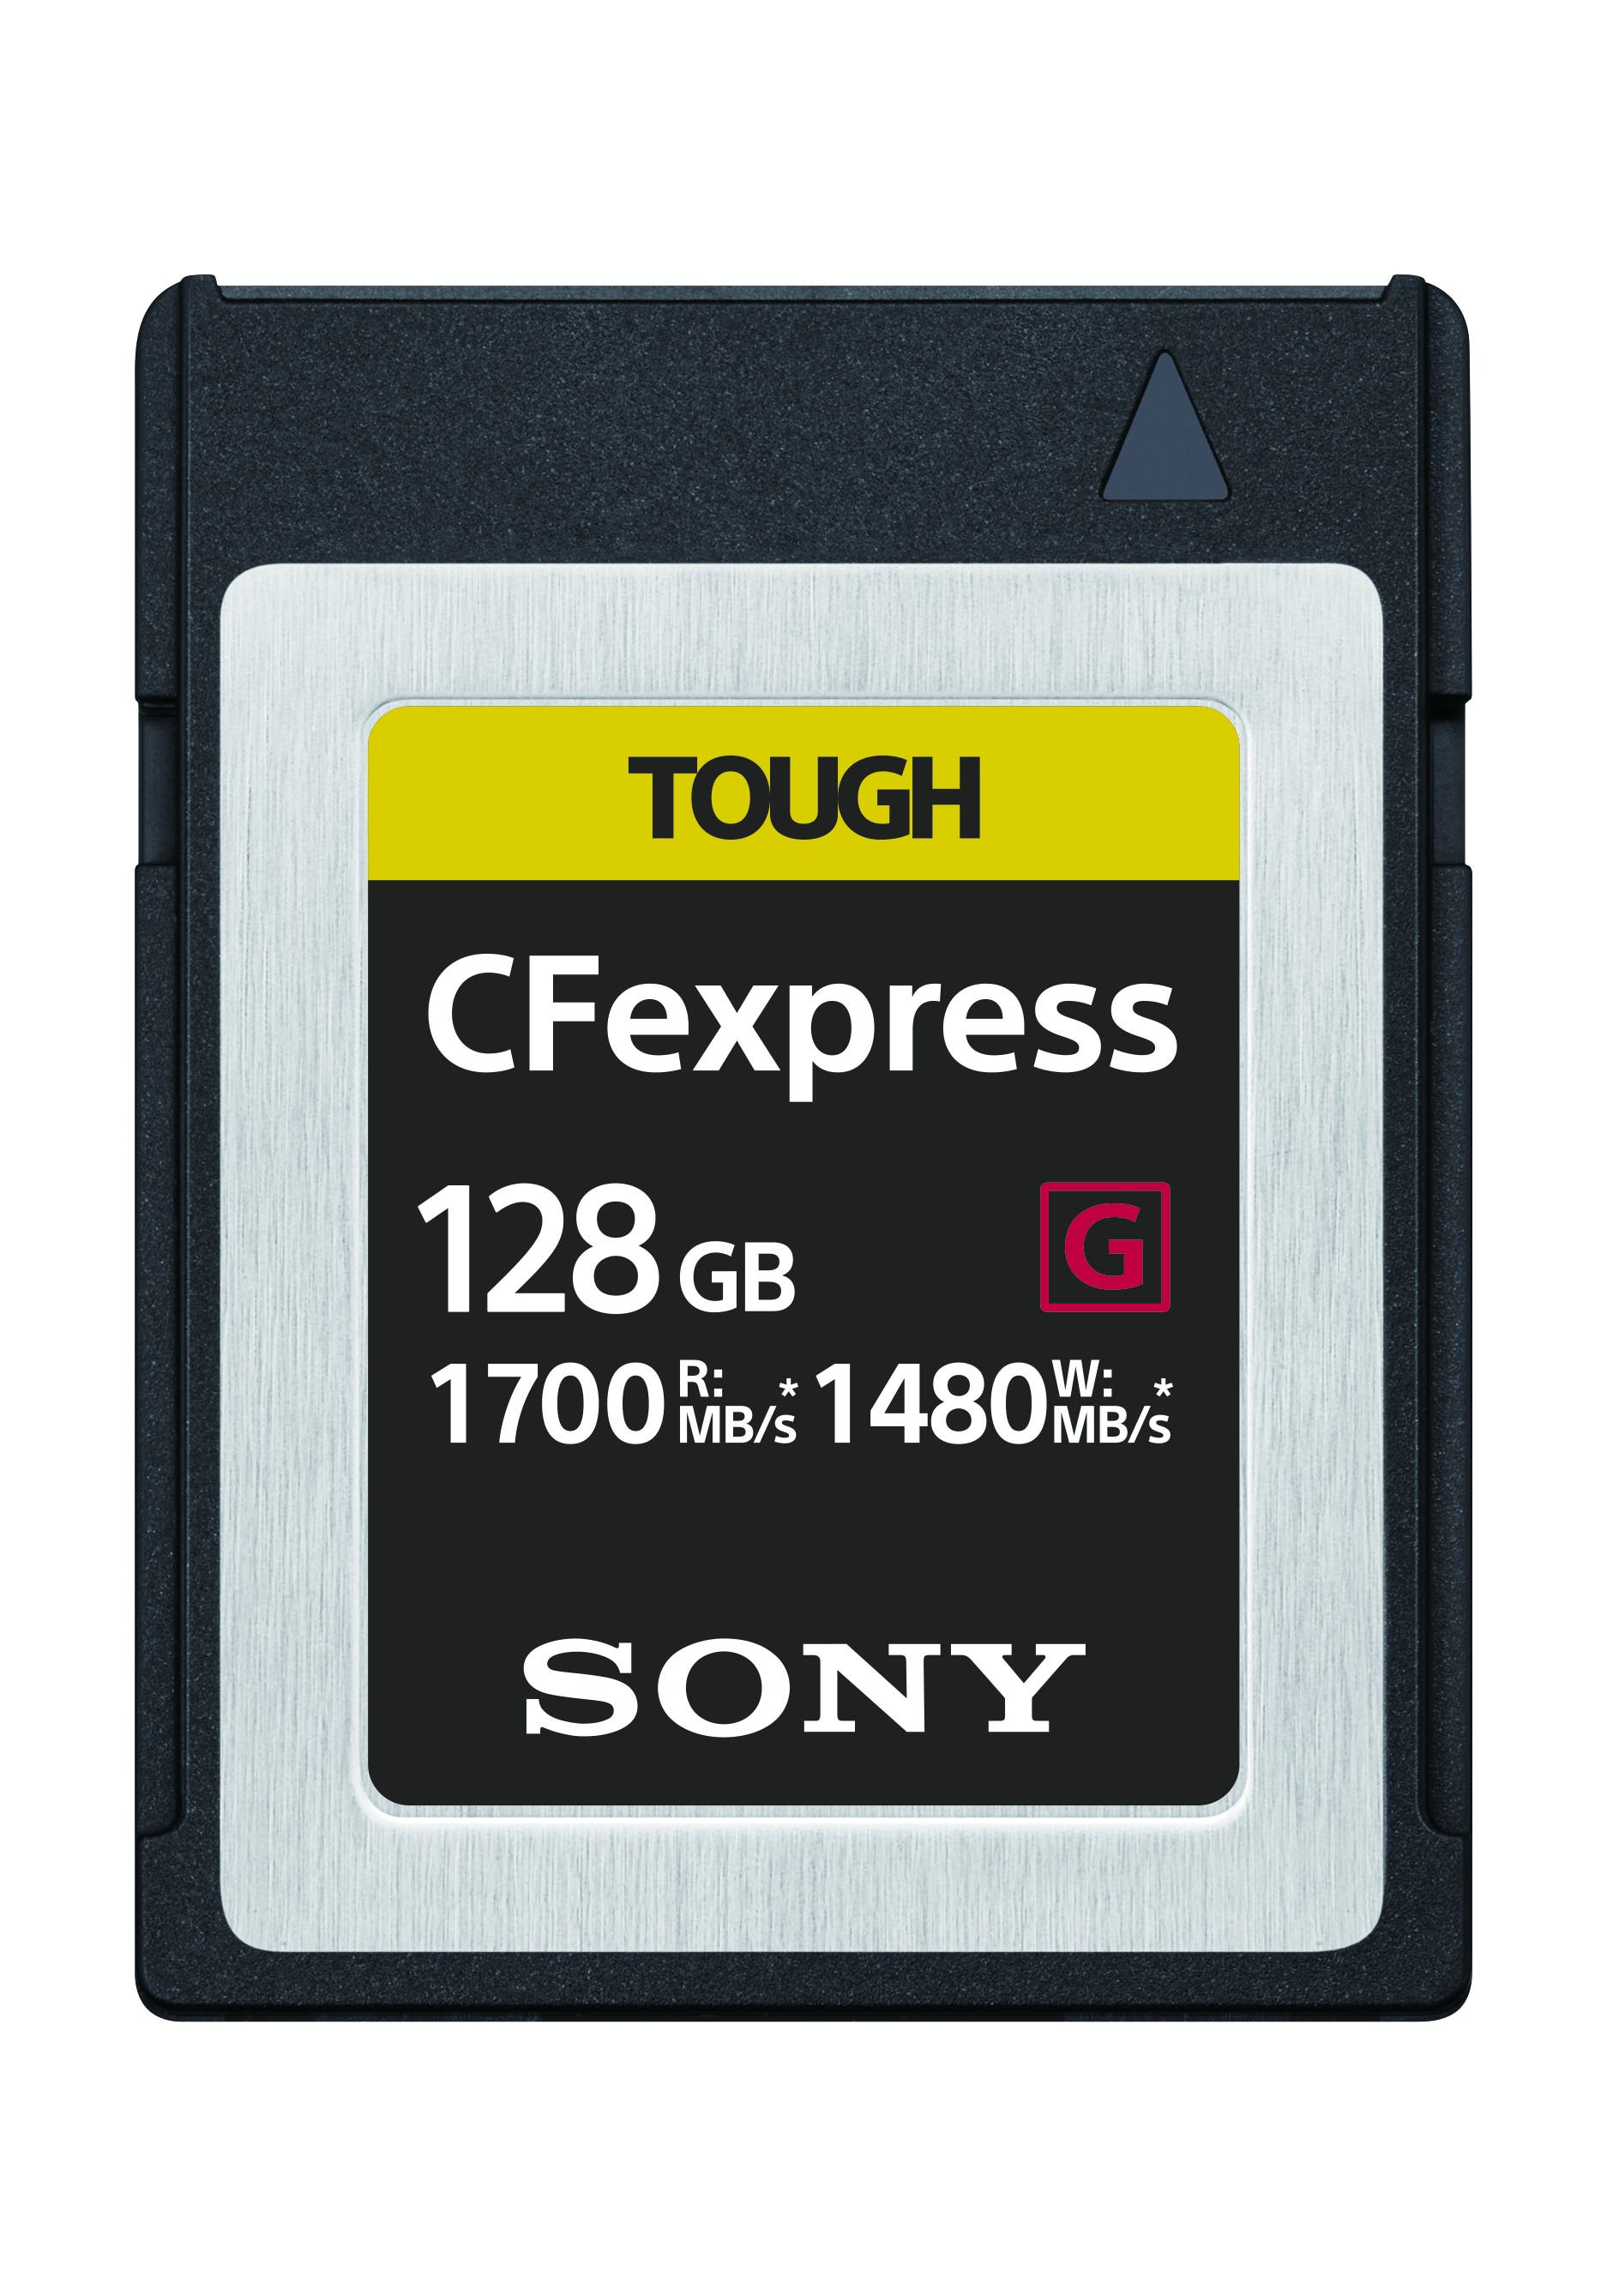 The New Sony CFexpress Type B Memory Cards are Tough as Nails